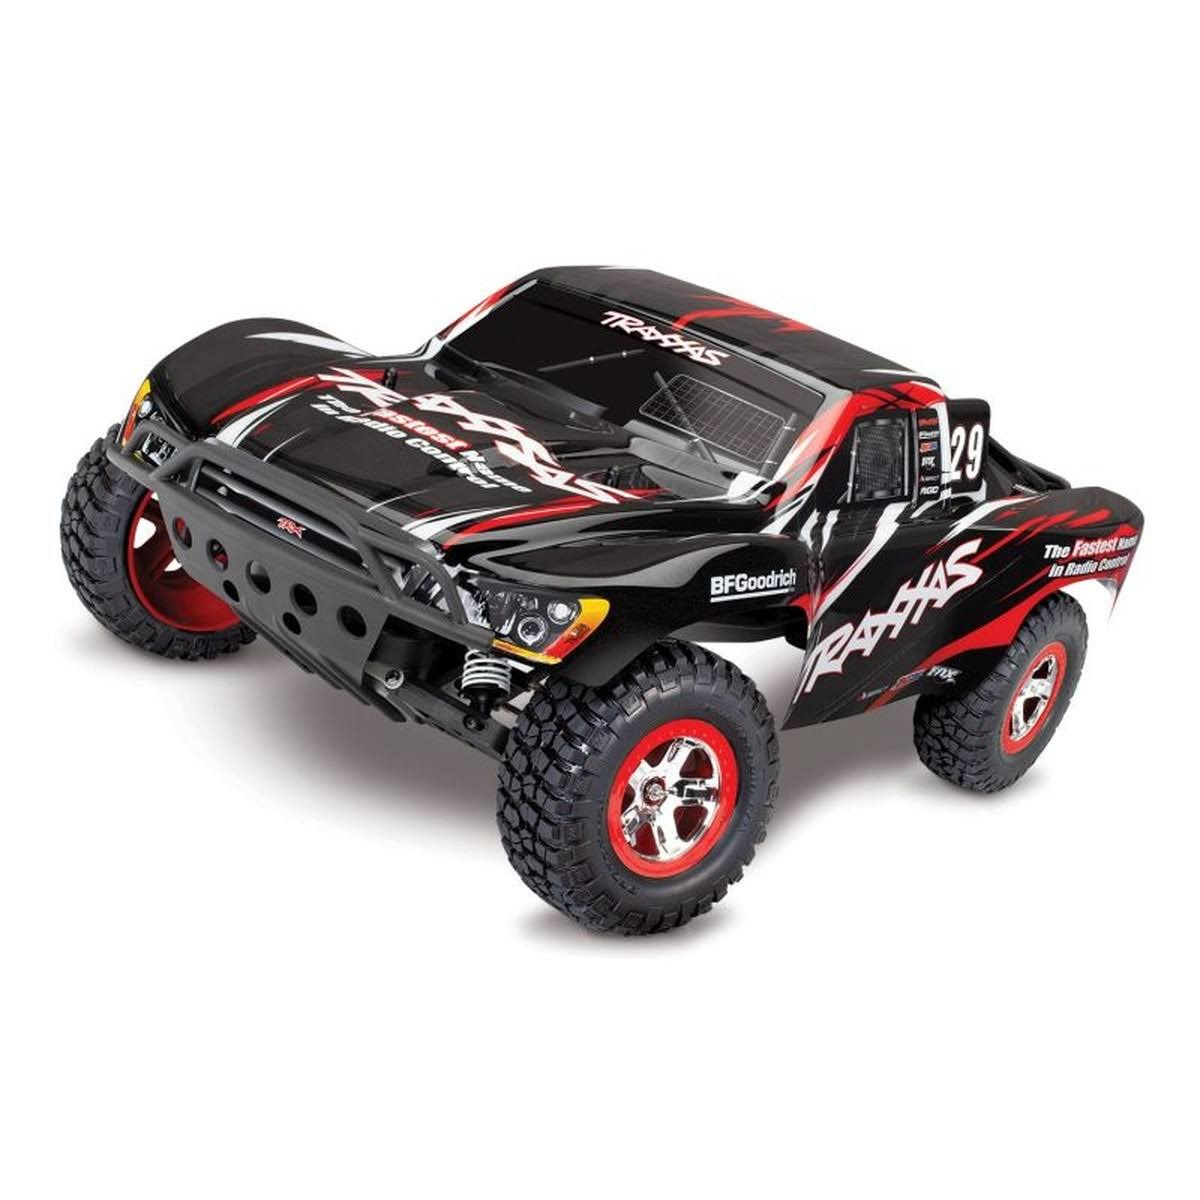 Traxxas Slash 1/10 2WD RTR - Black